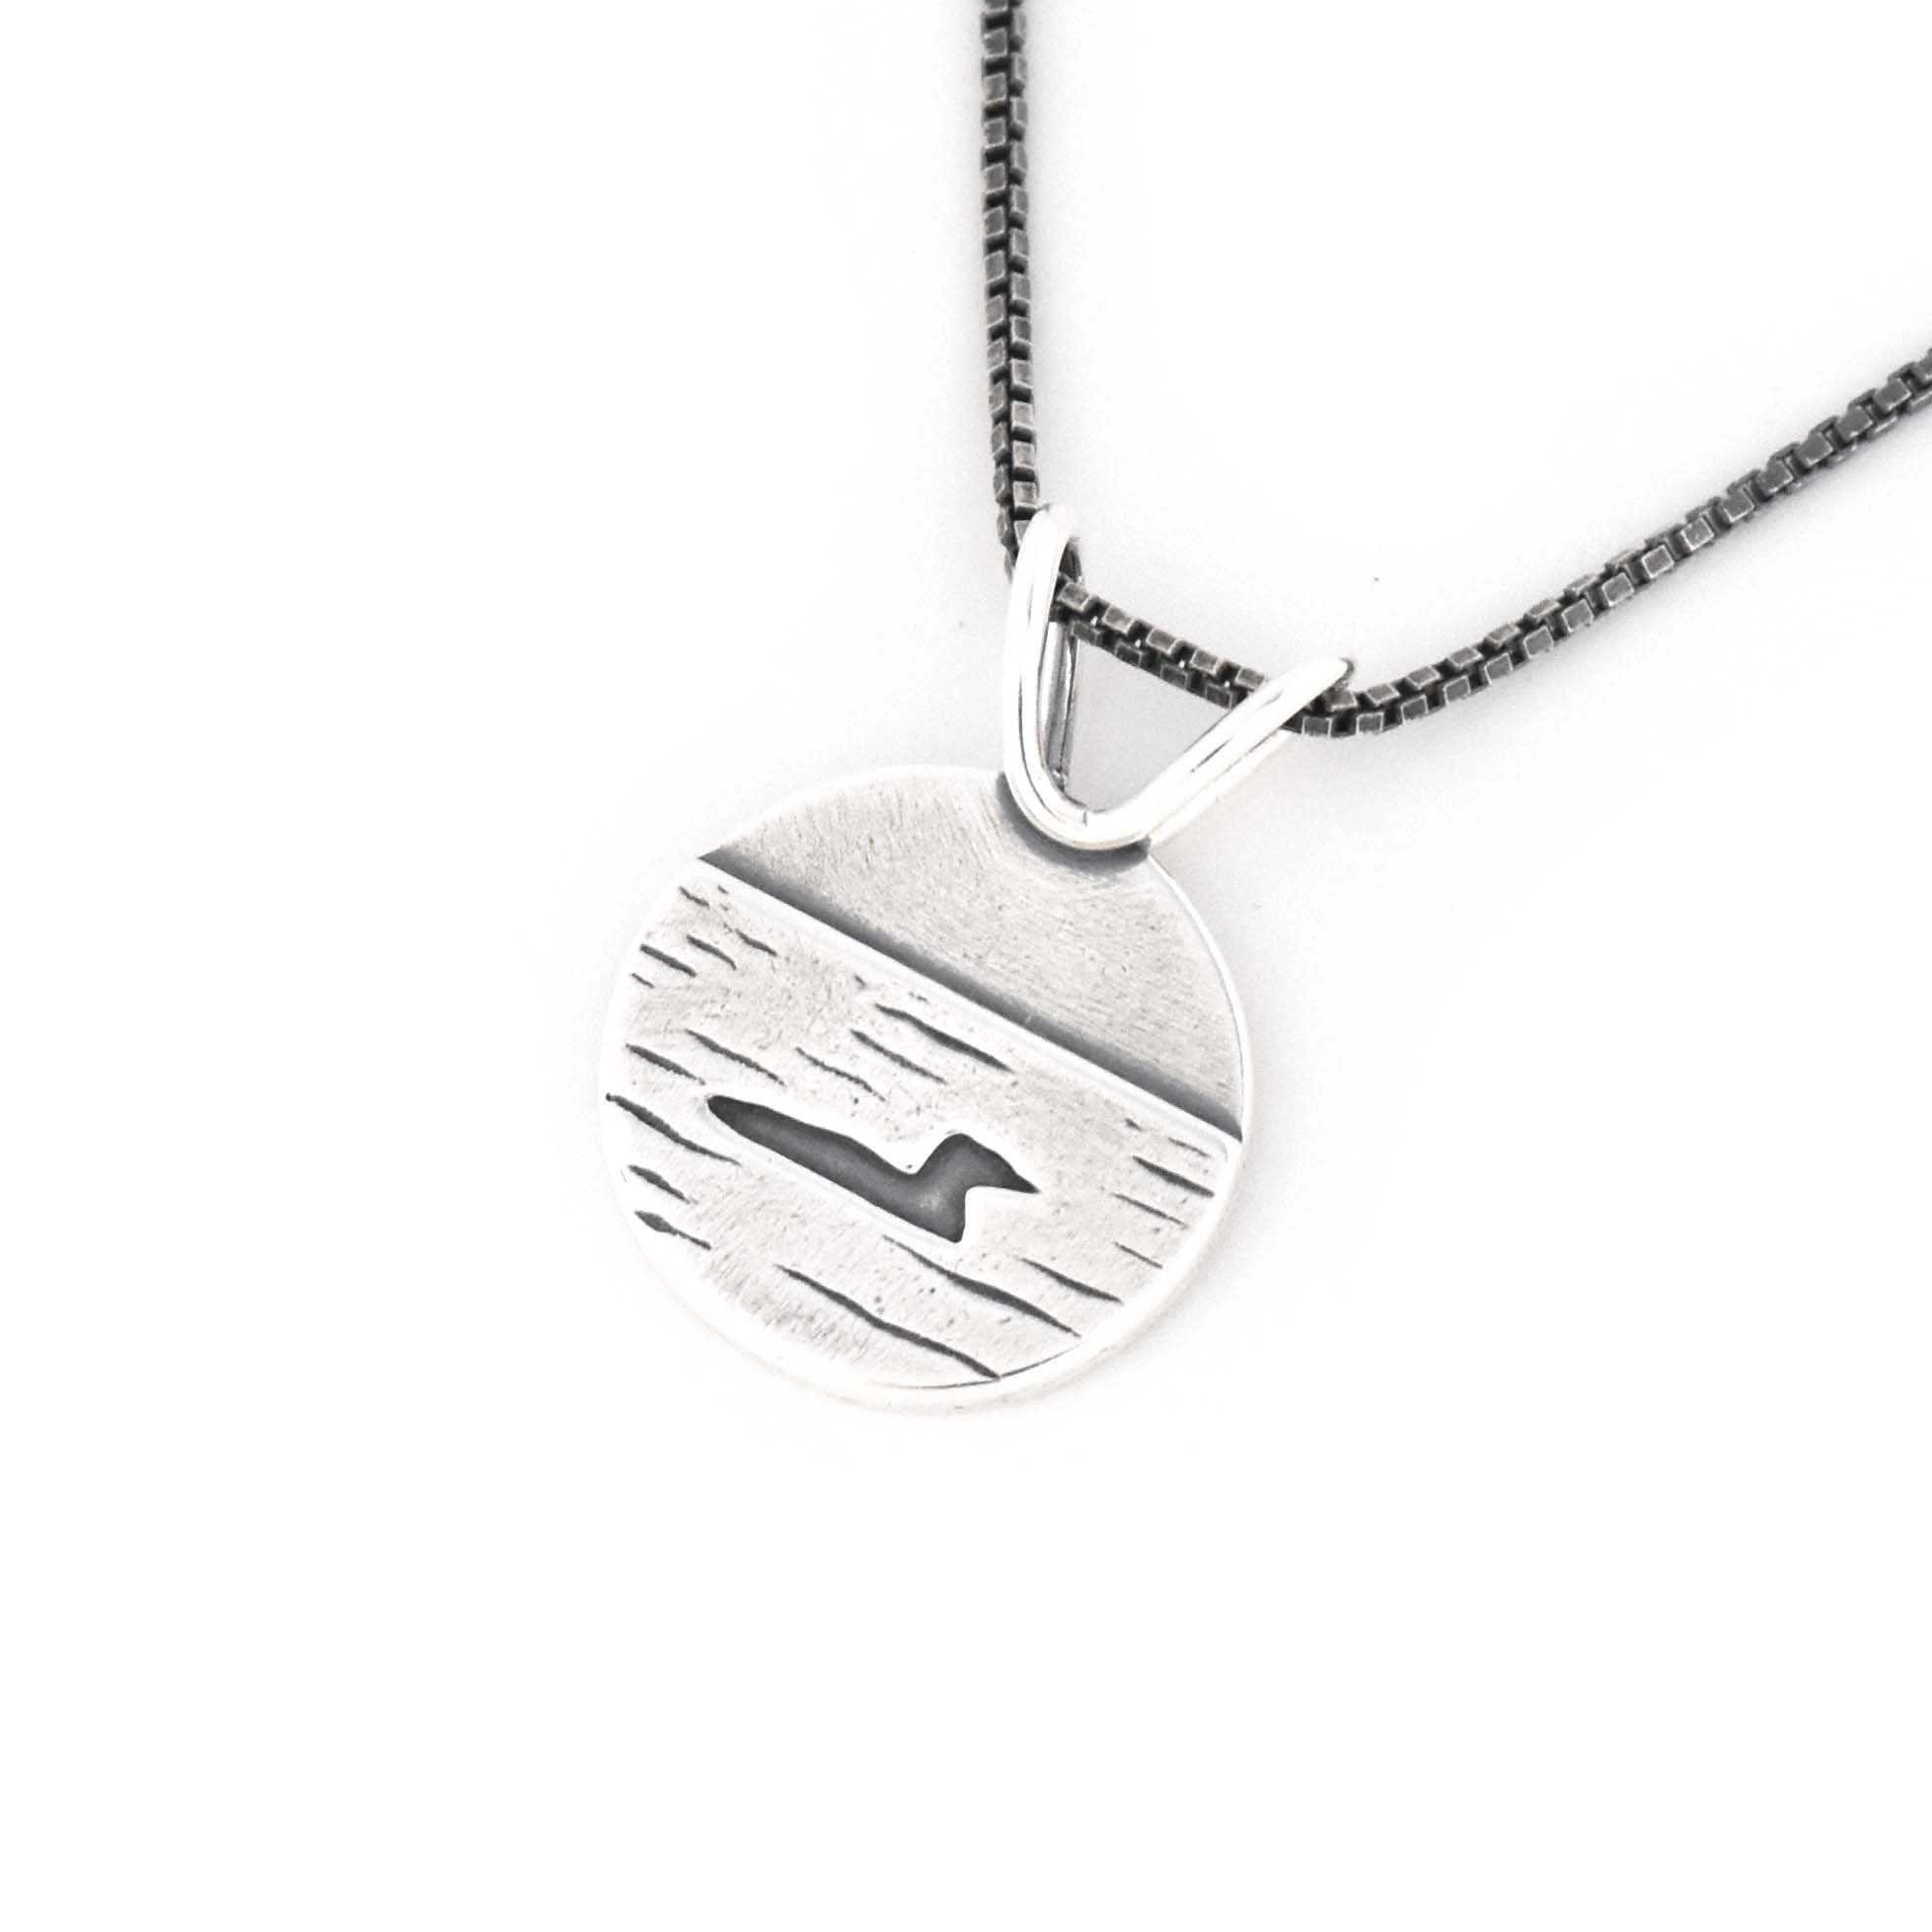 Small Loon Lake Pendant, Silver Pendant handmade by Beth Millner Jewelry